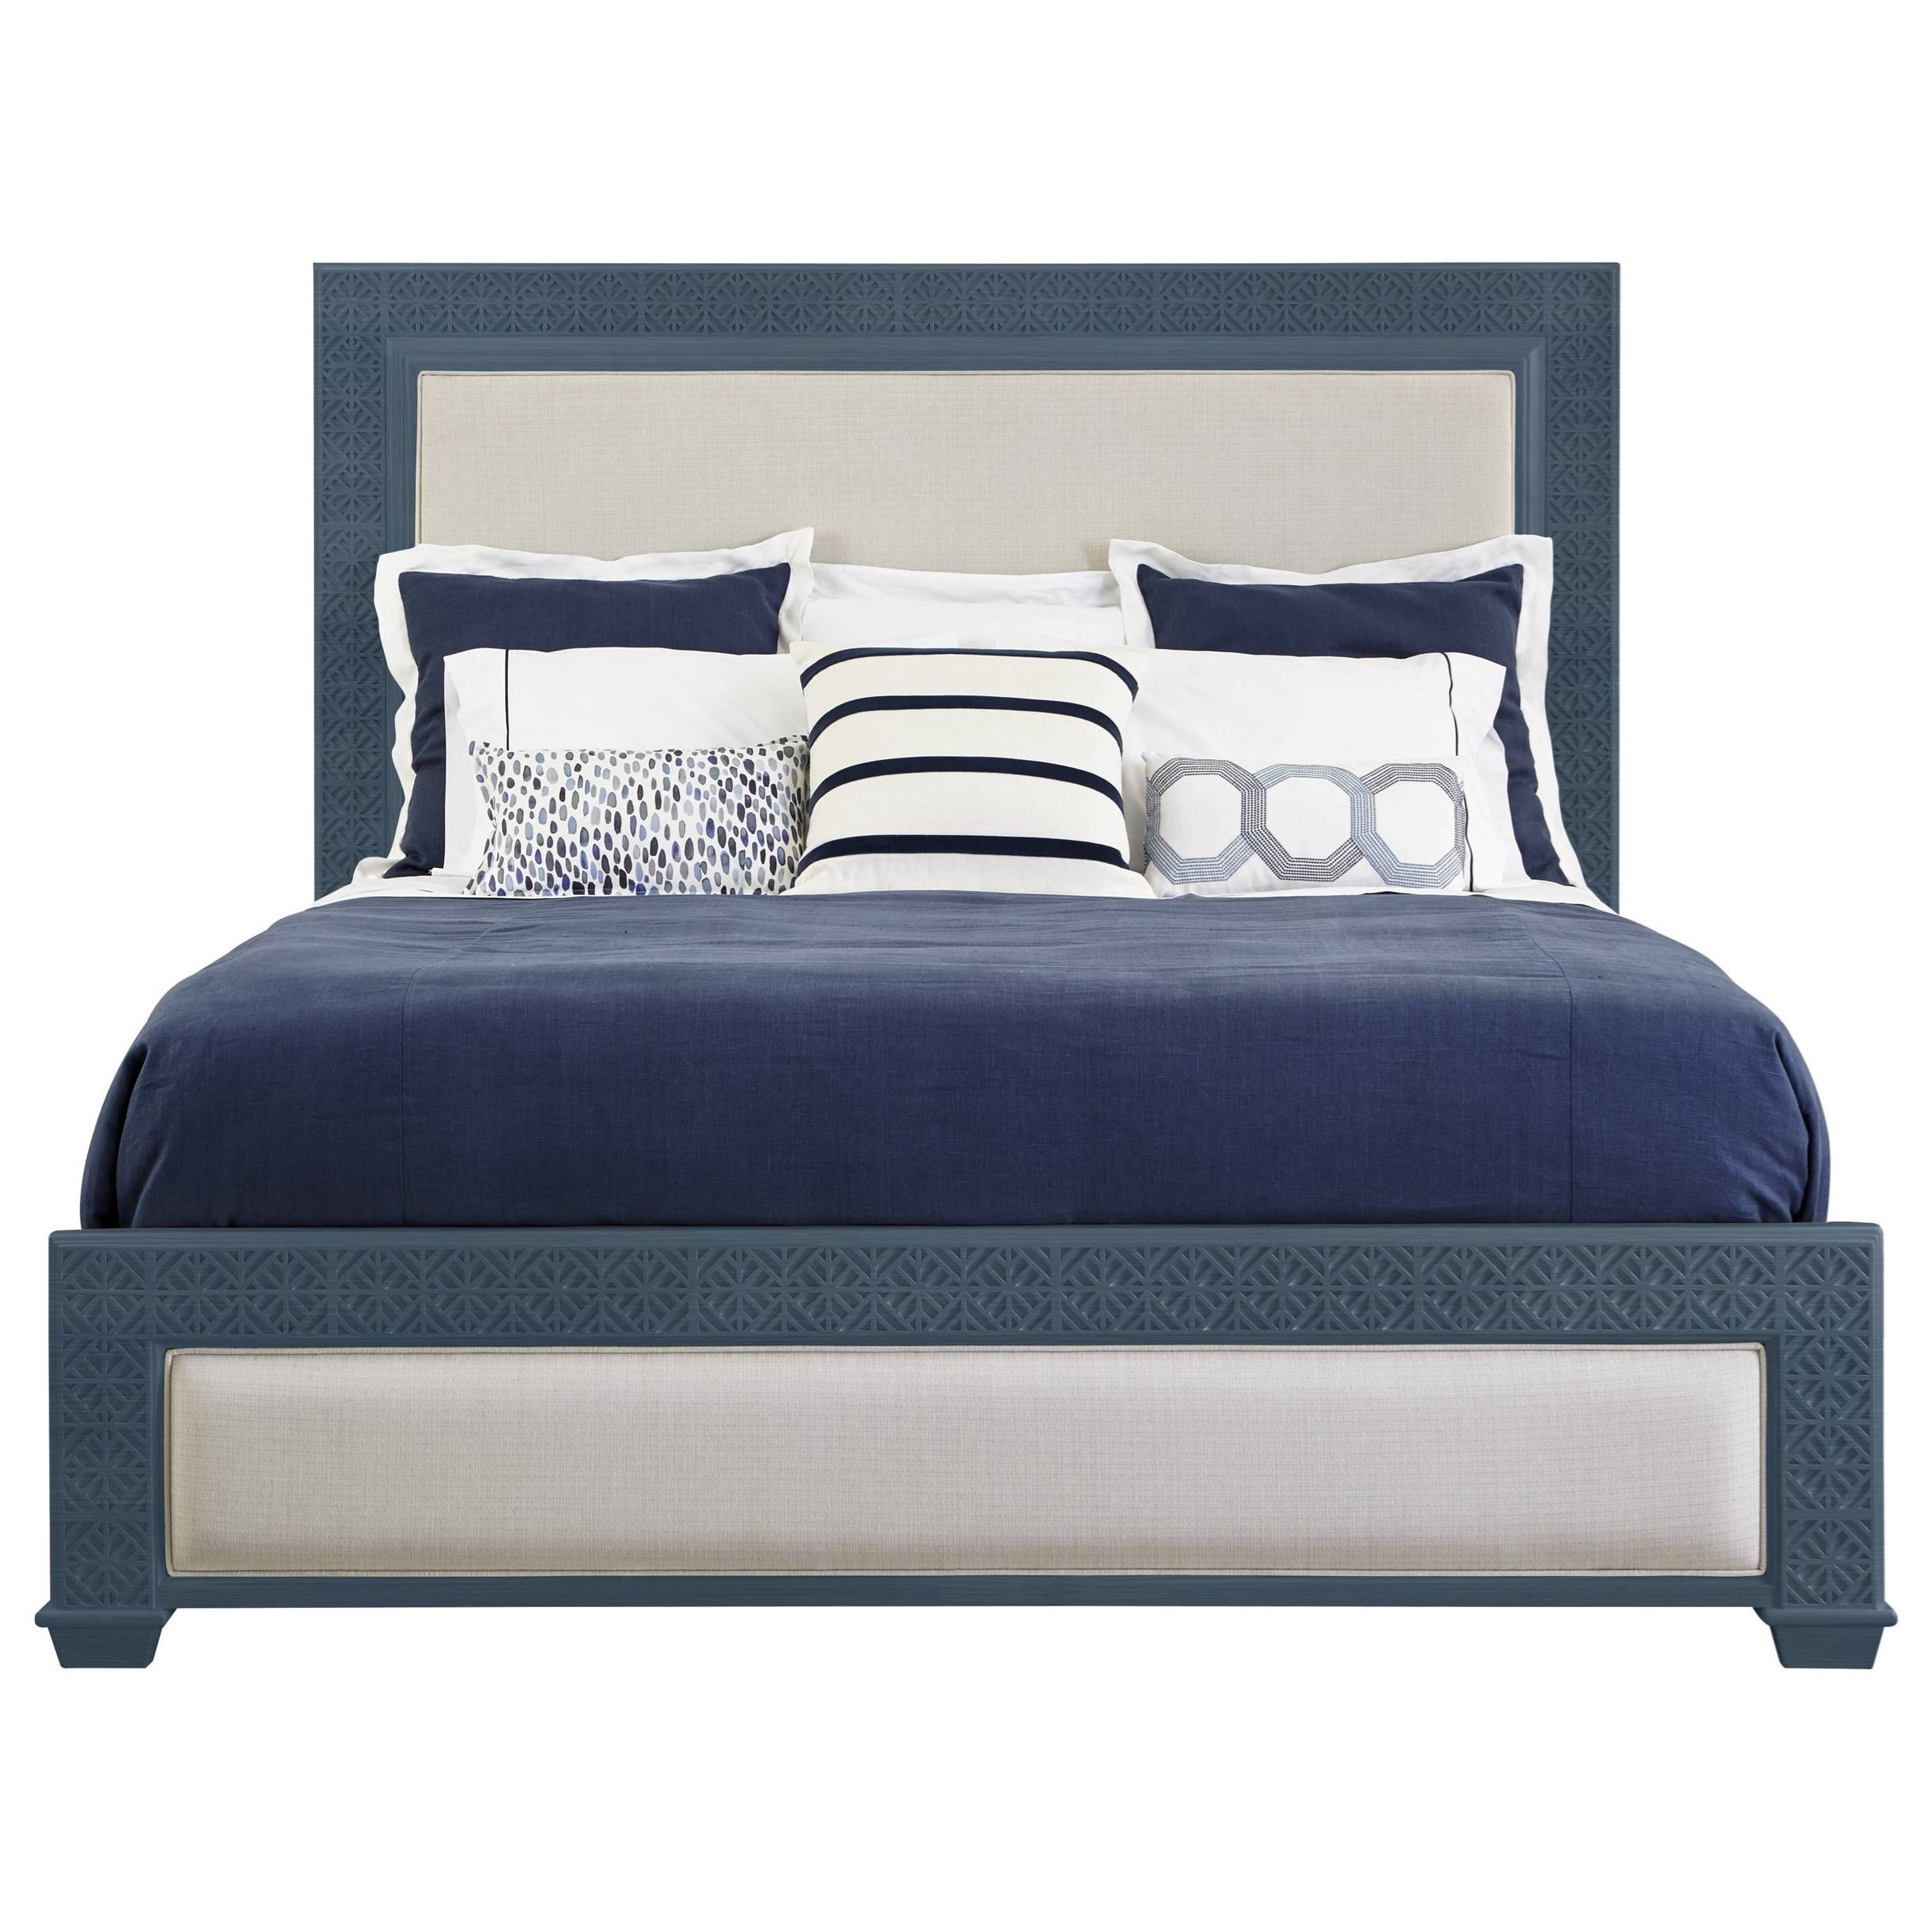 Stanley Furniture Coastal Living Oasis California King Catalina Panel Bed - Item Number: 527-43-46